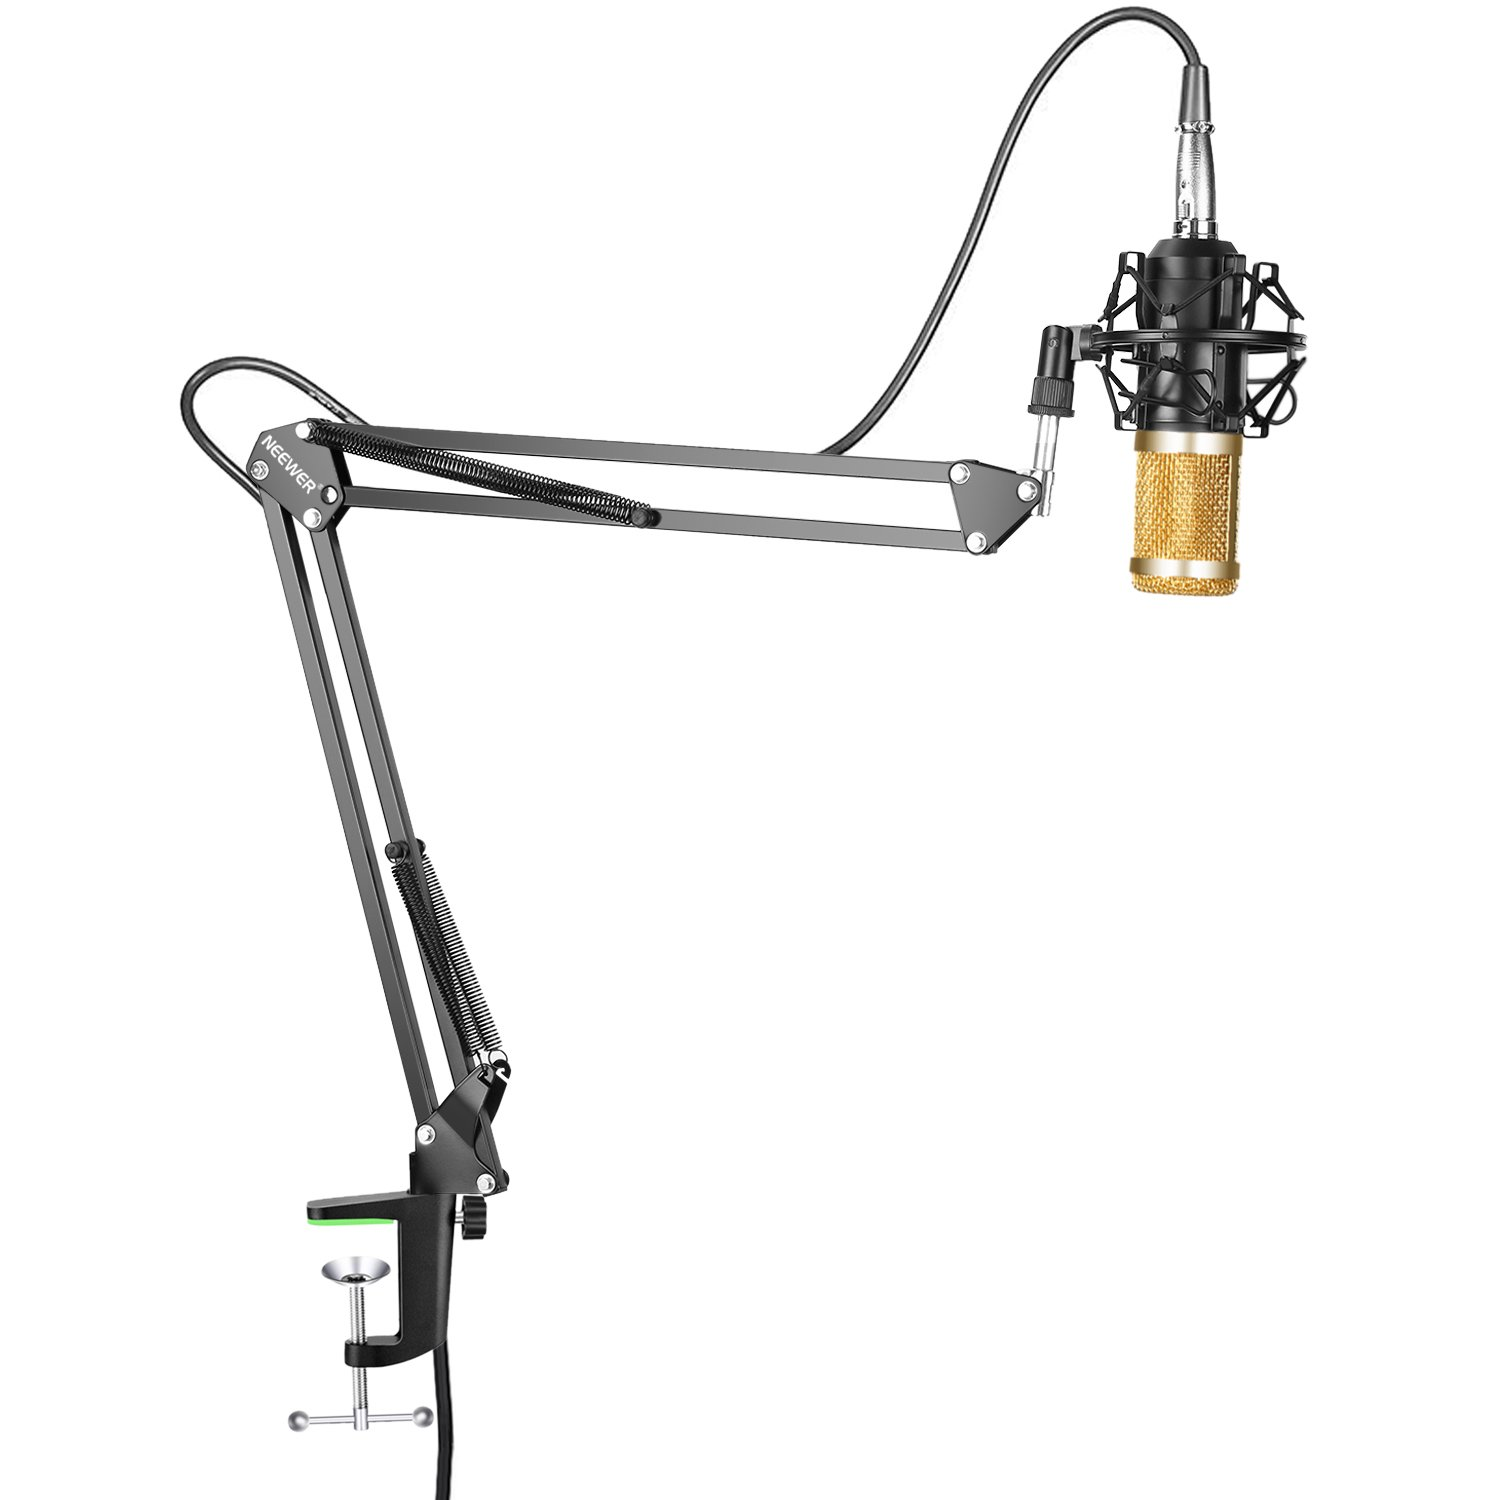 Neewer NW-800 Professional Studio Broadcasting Recording Condenser Microphone & NW-35 Adjustable Recording Microphone Suspension Scissor Arm Stand 90088313